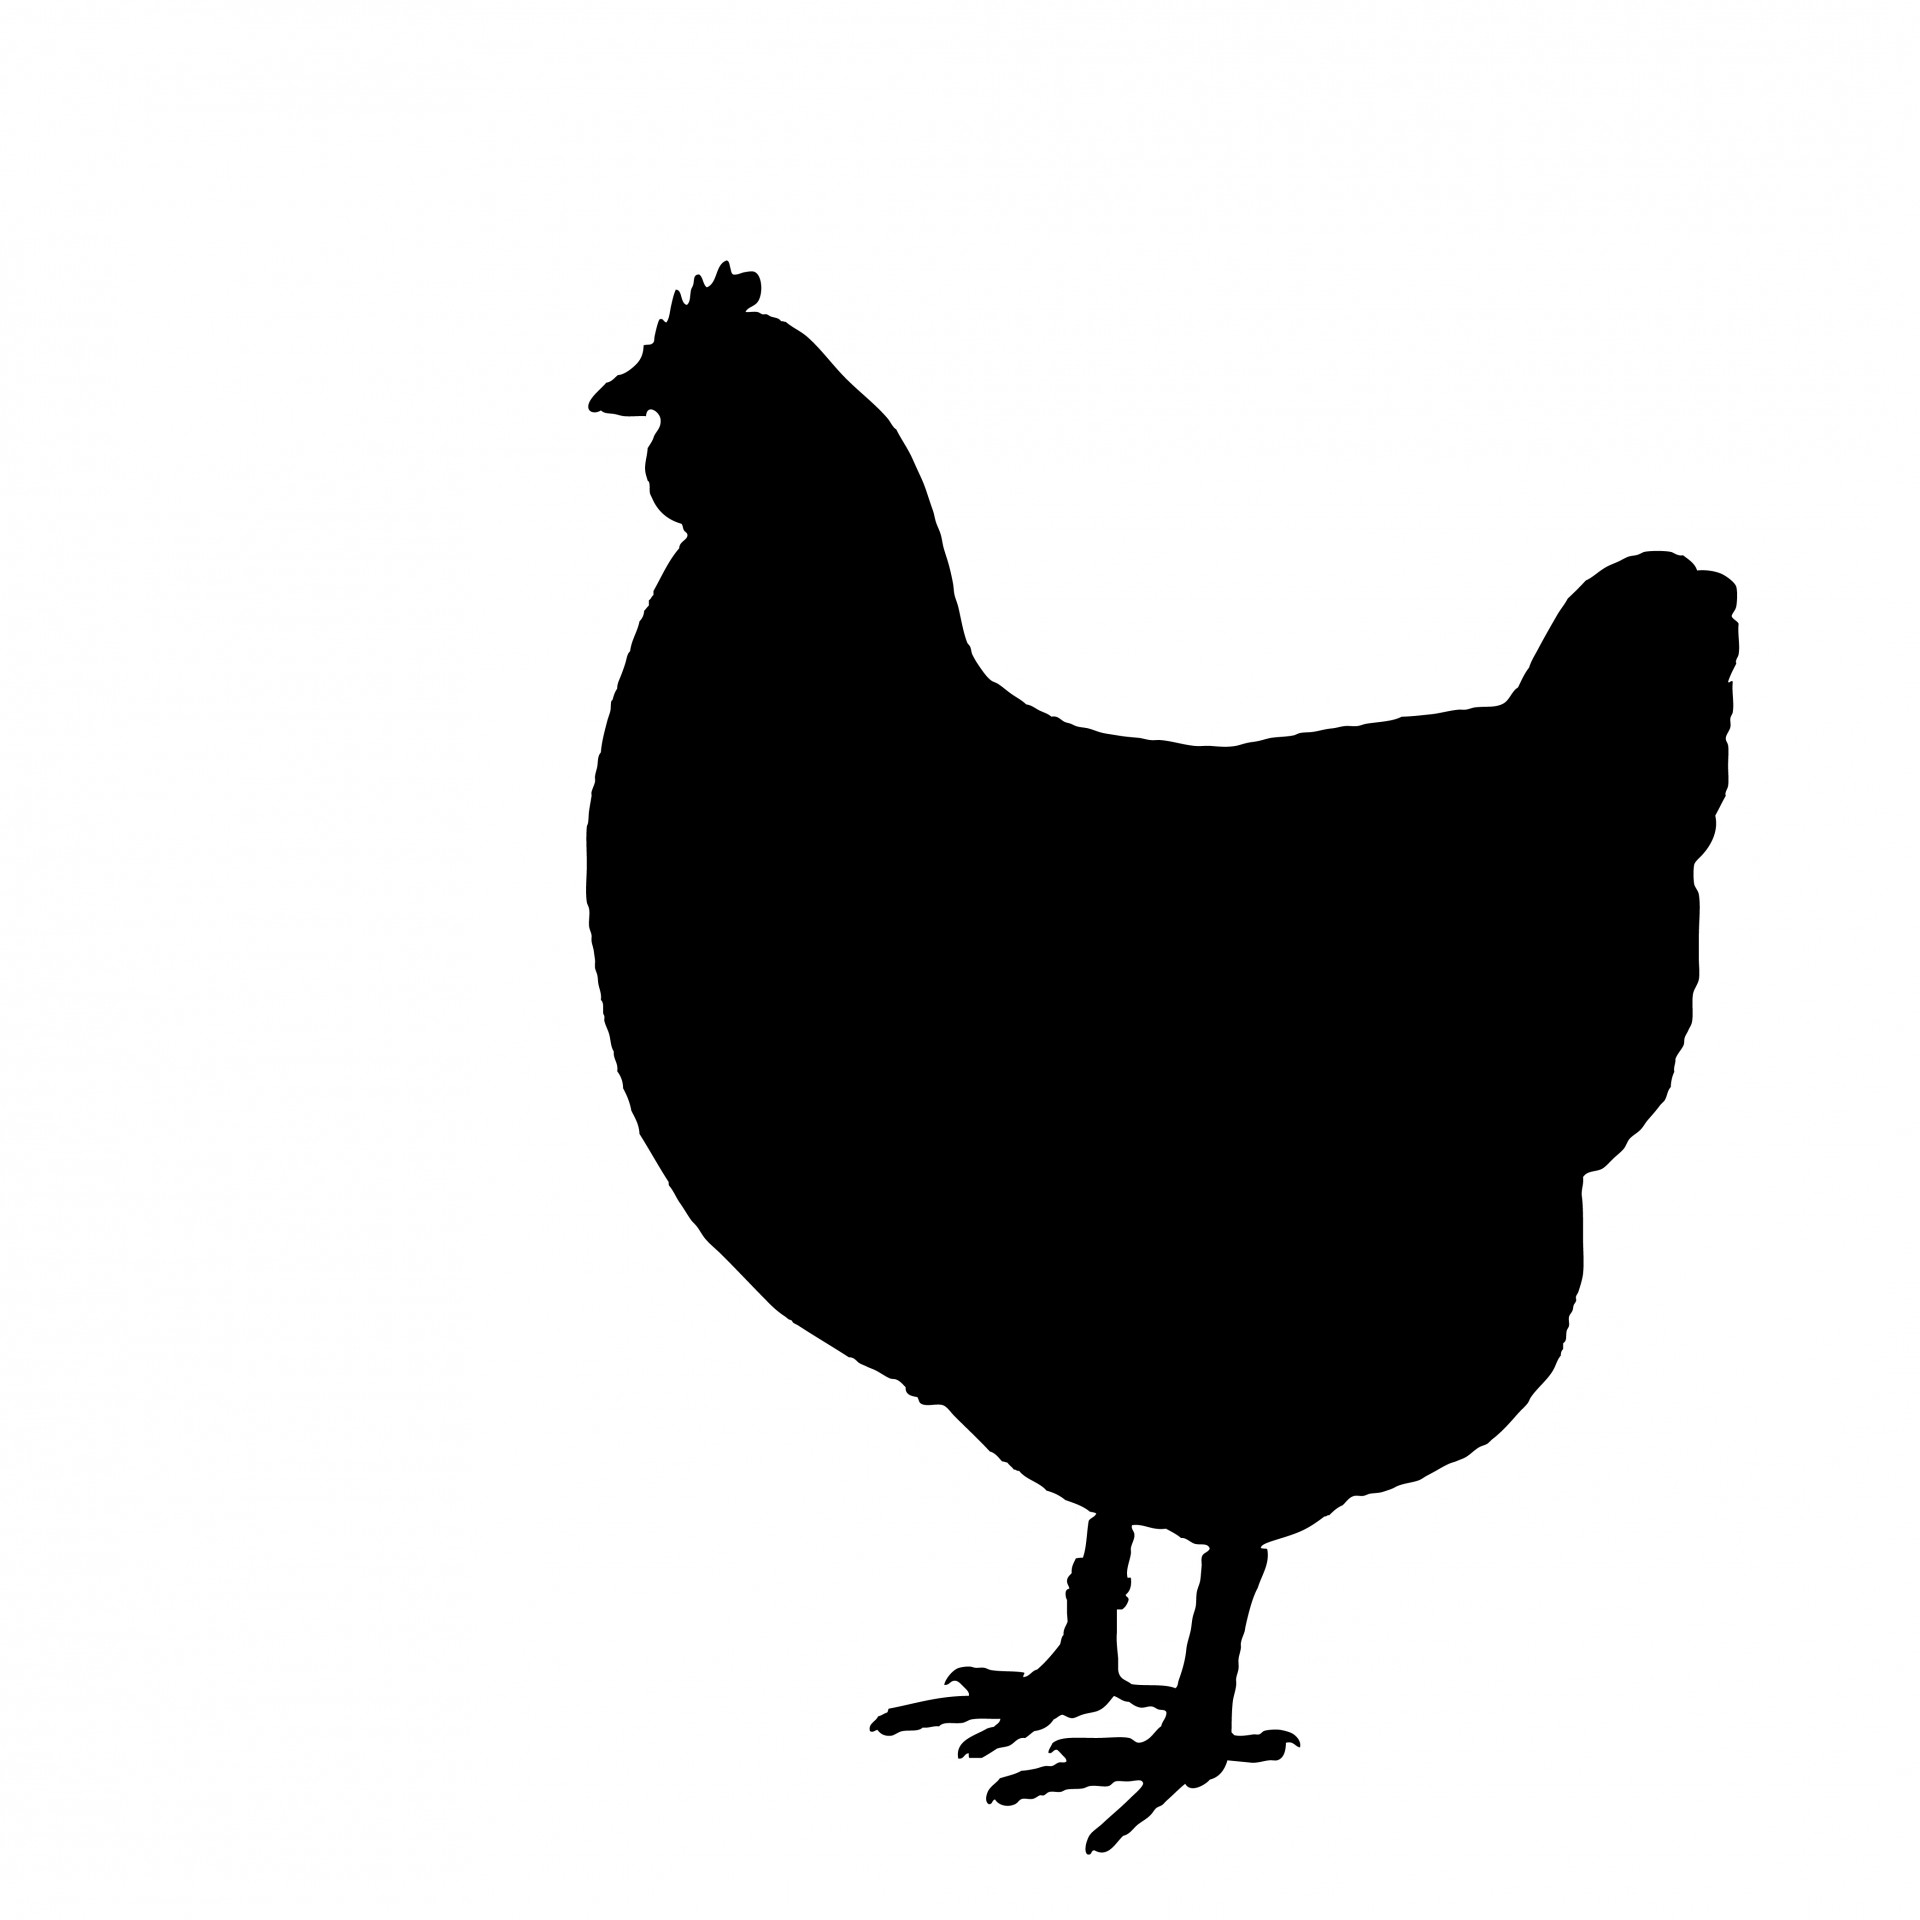 Animals clipart chicken. Silhouette free stock photo